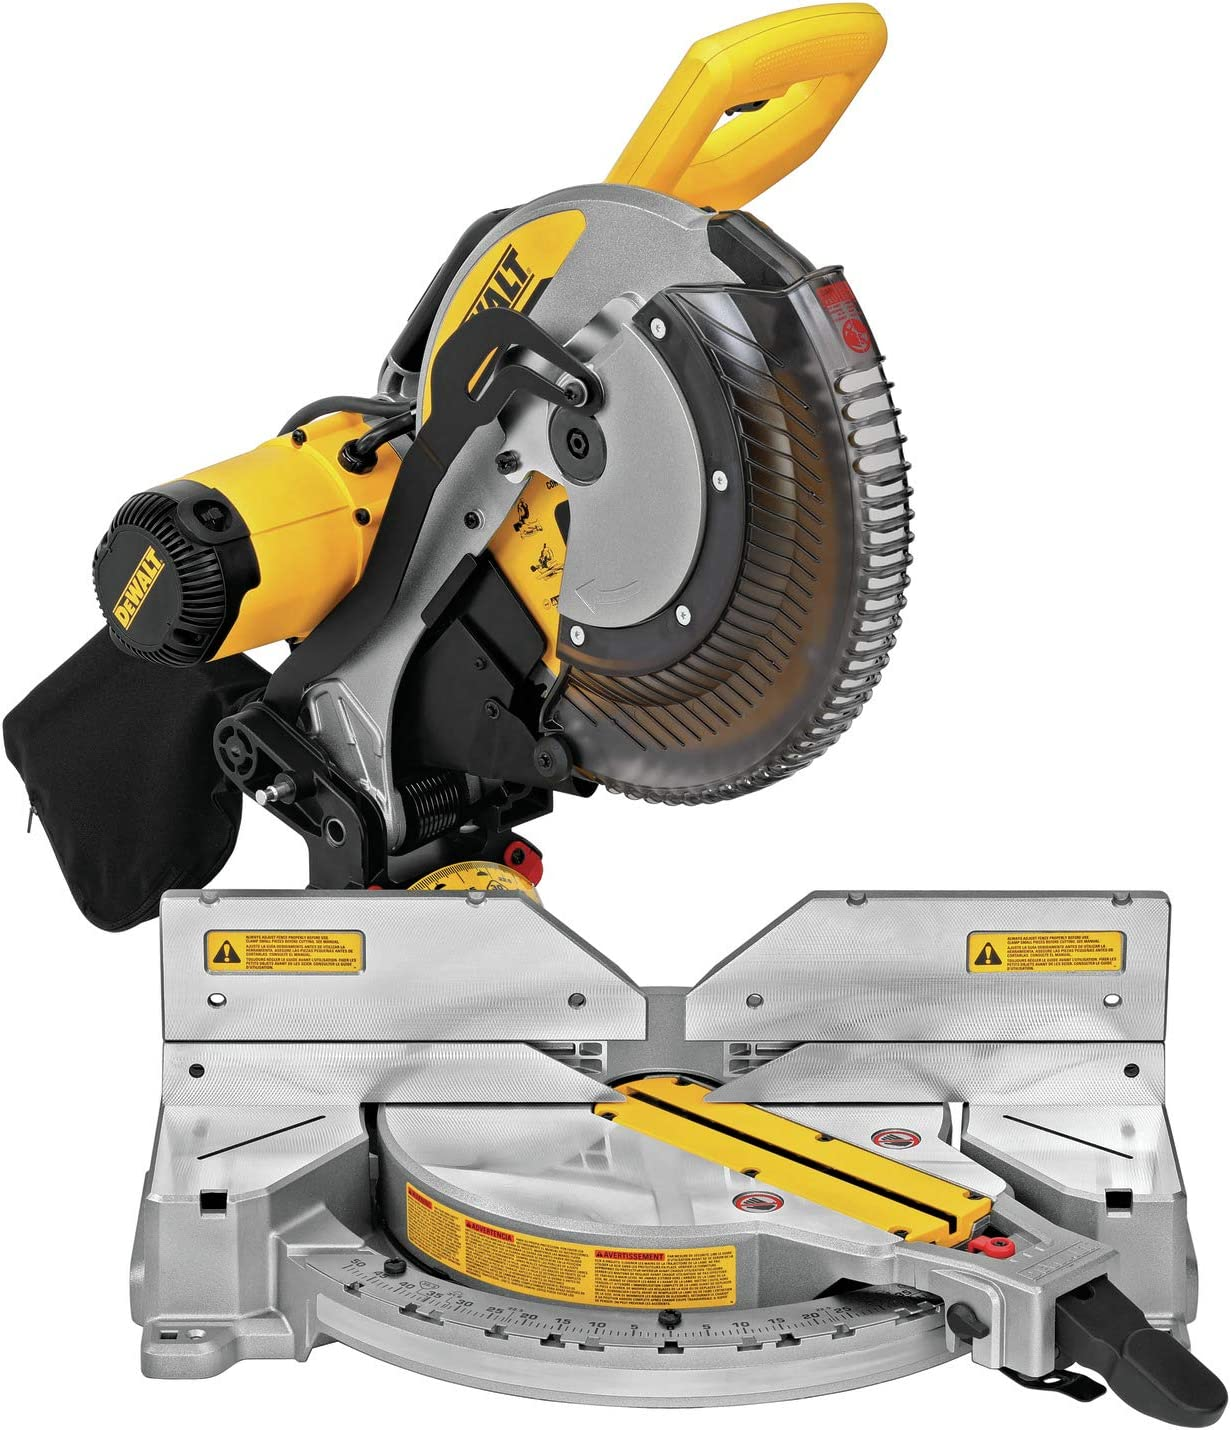 DEWALT Miter Saw, Double-Bevel, Compound, 12-Inch, 15-Amp (DWS716)